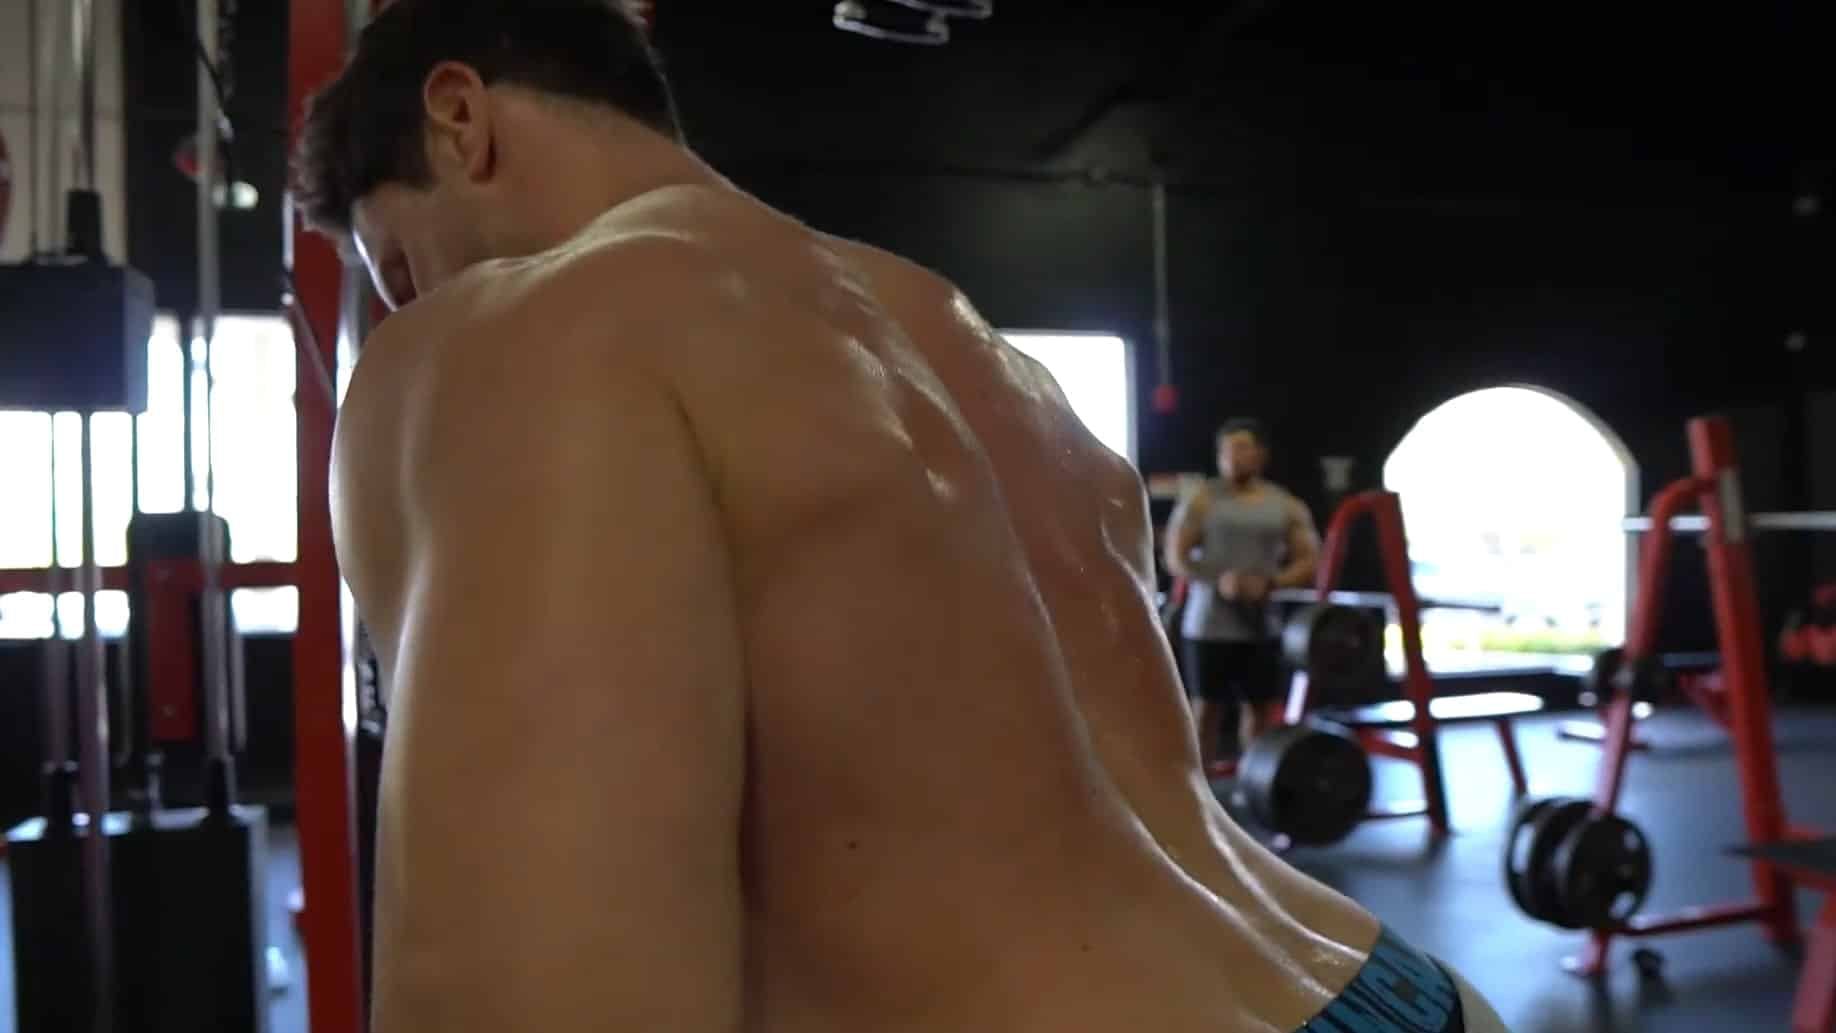 Troy performing a cable pull over with correct shoulder form